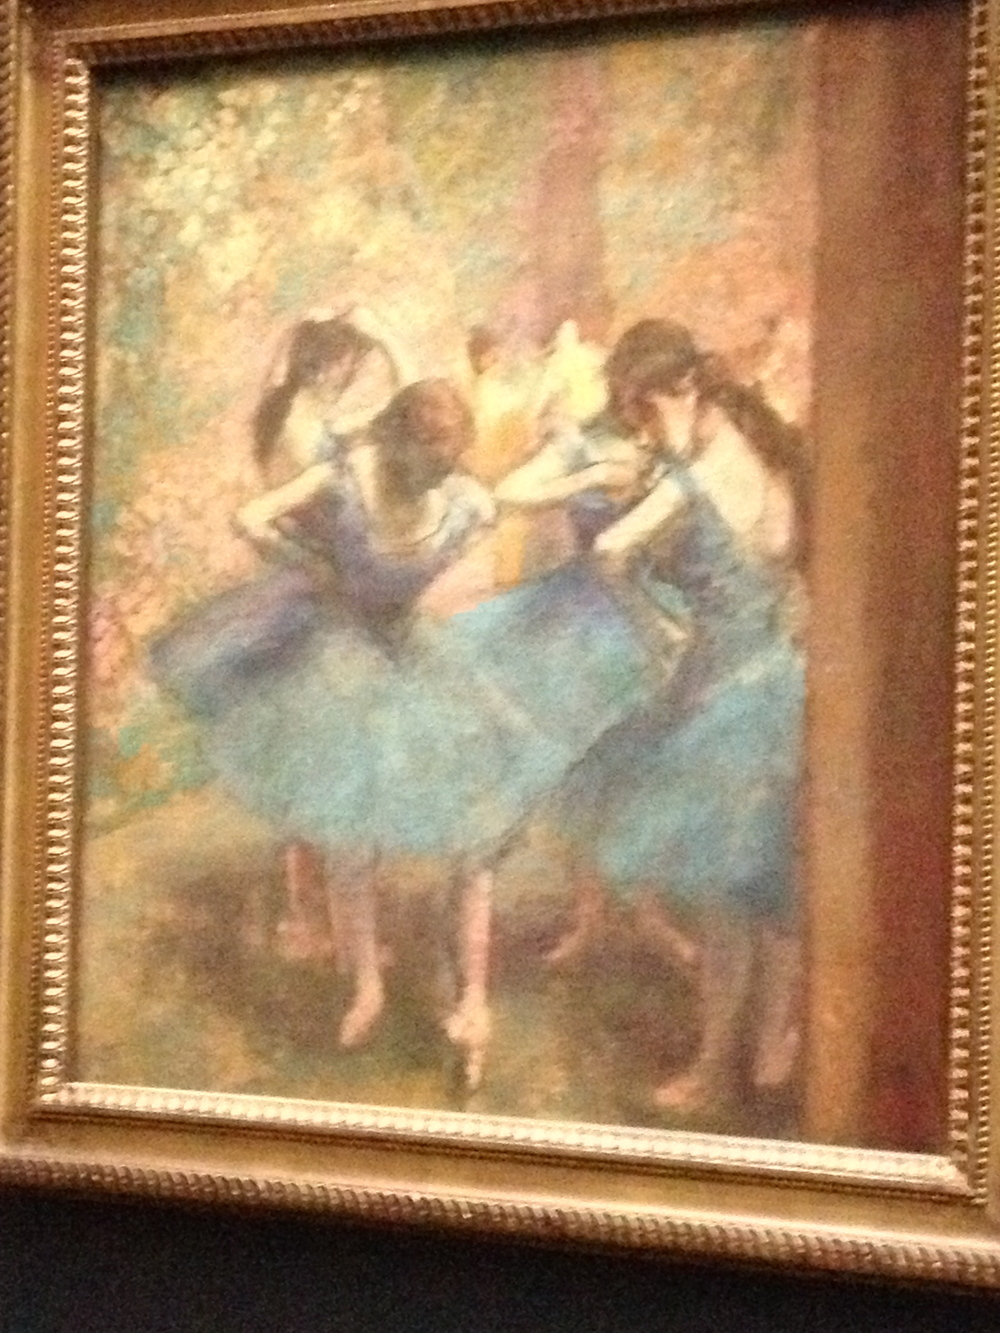 Degas is a personal fav of mine which sounds pretentious but whatever, it's my blog, I do what I want.